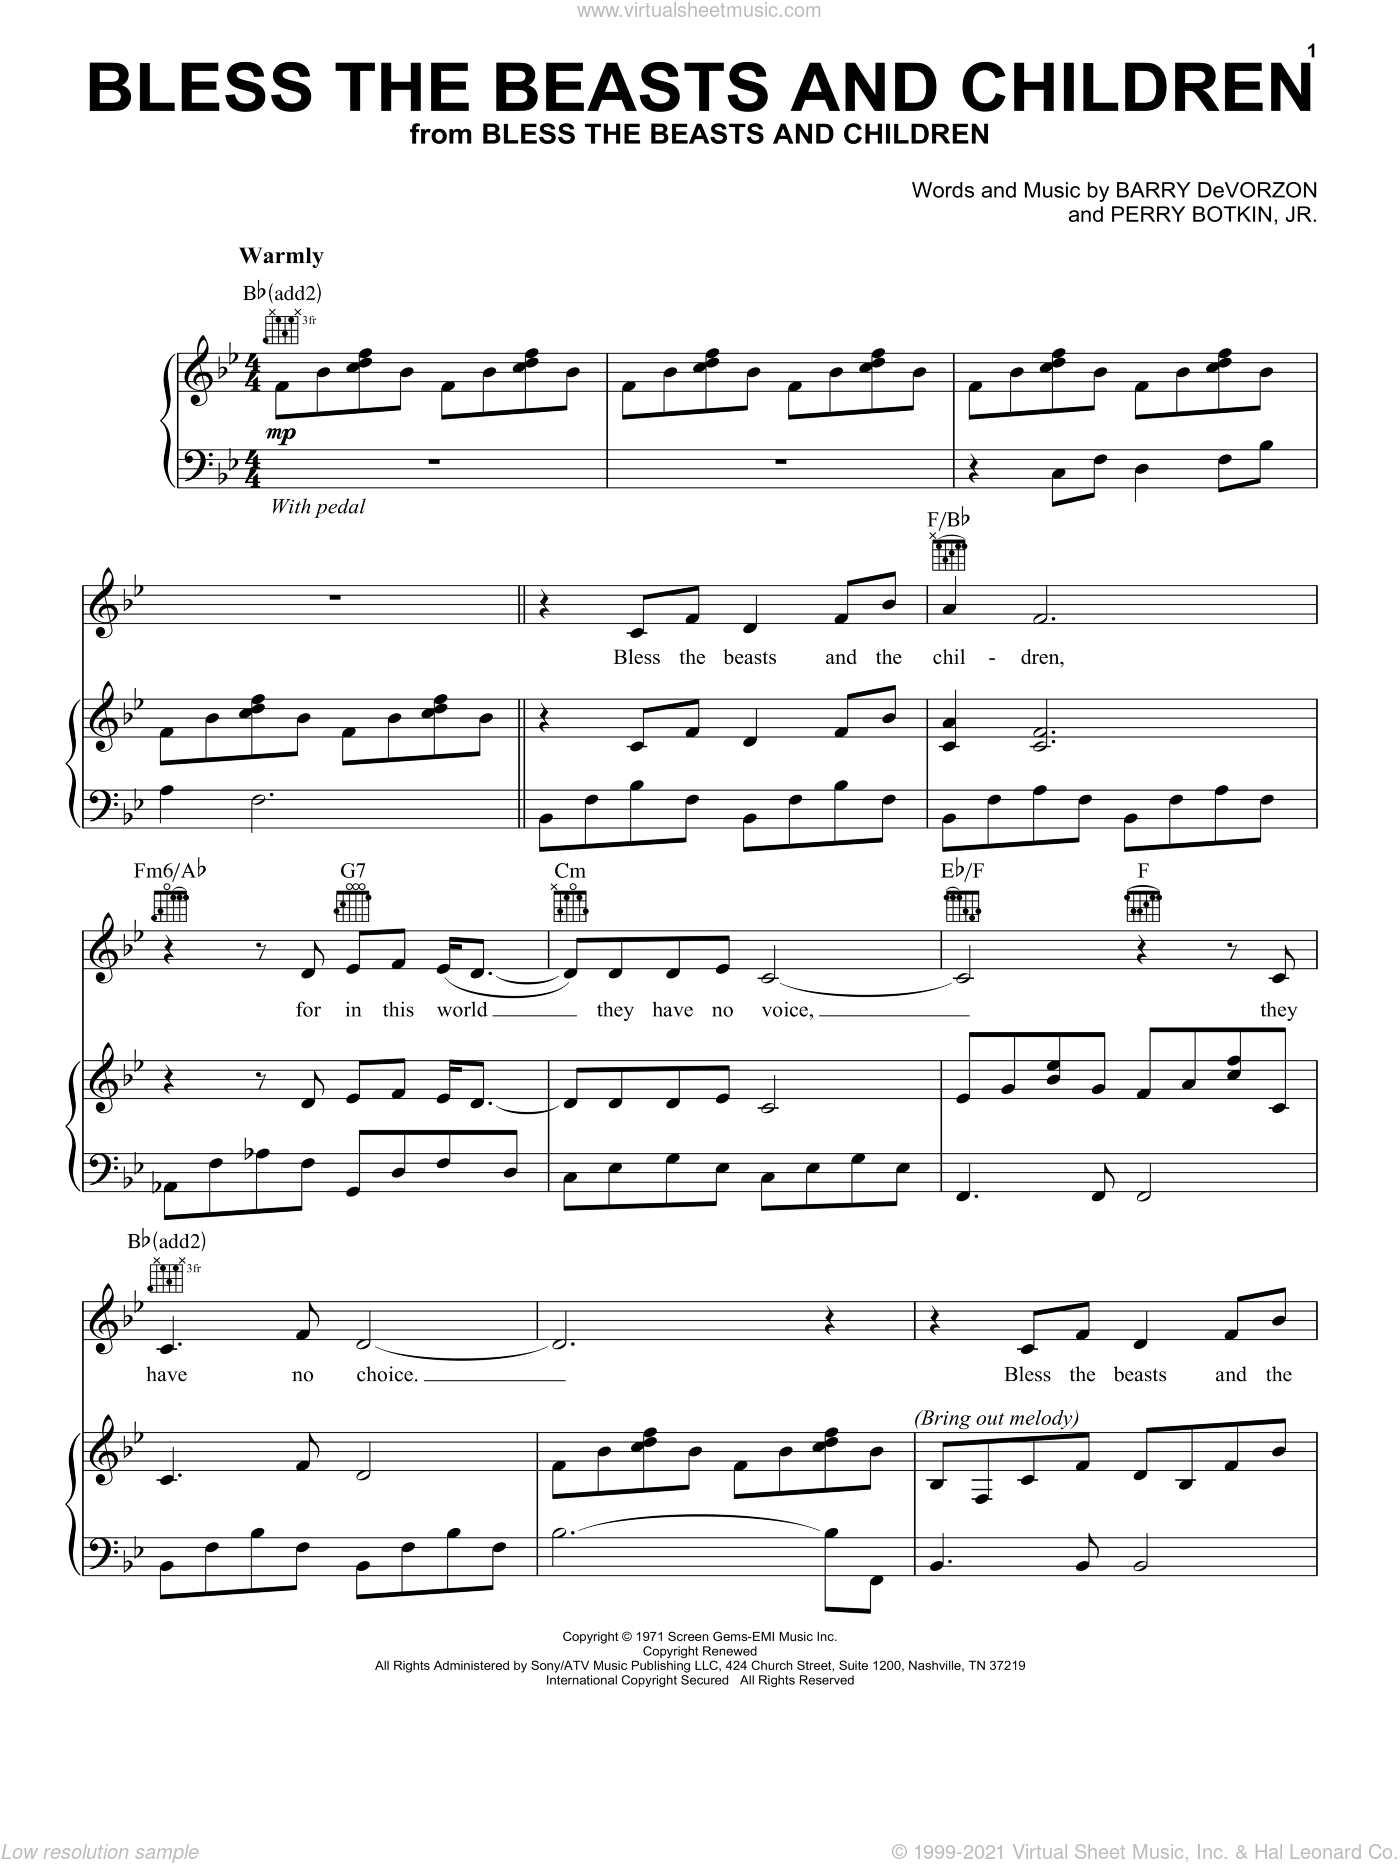 Bless The Beasts And Children sheet music for voice, piano or guitar by Perry Botkin, Jr.